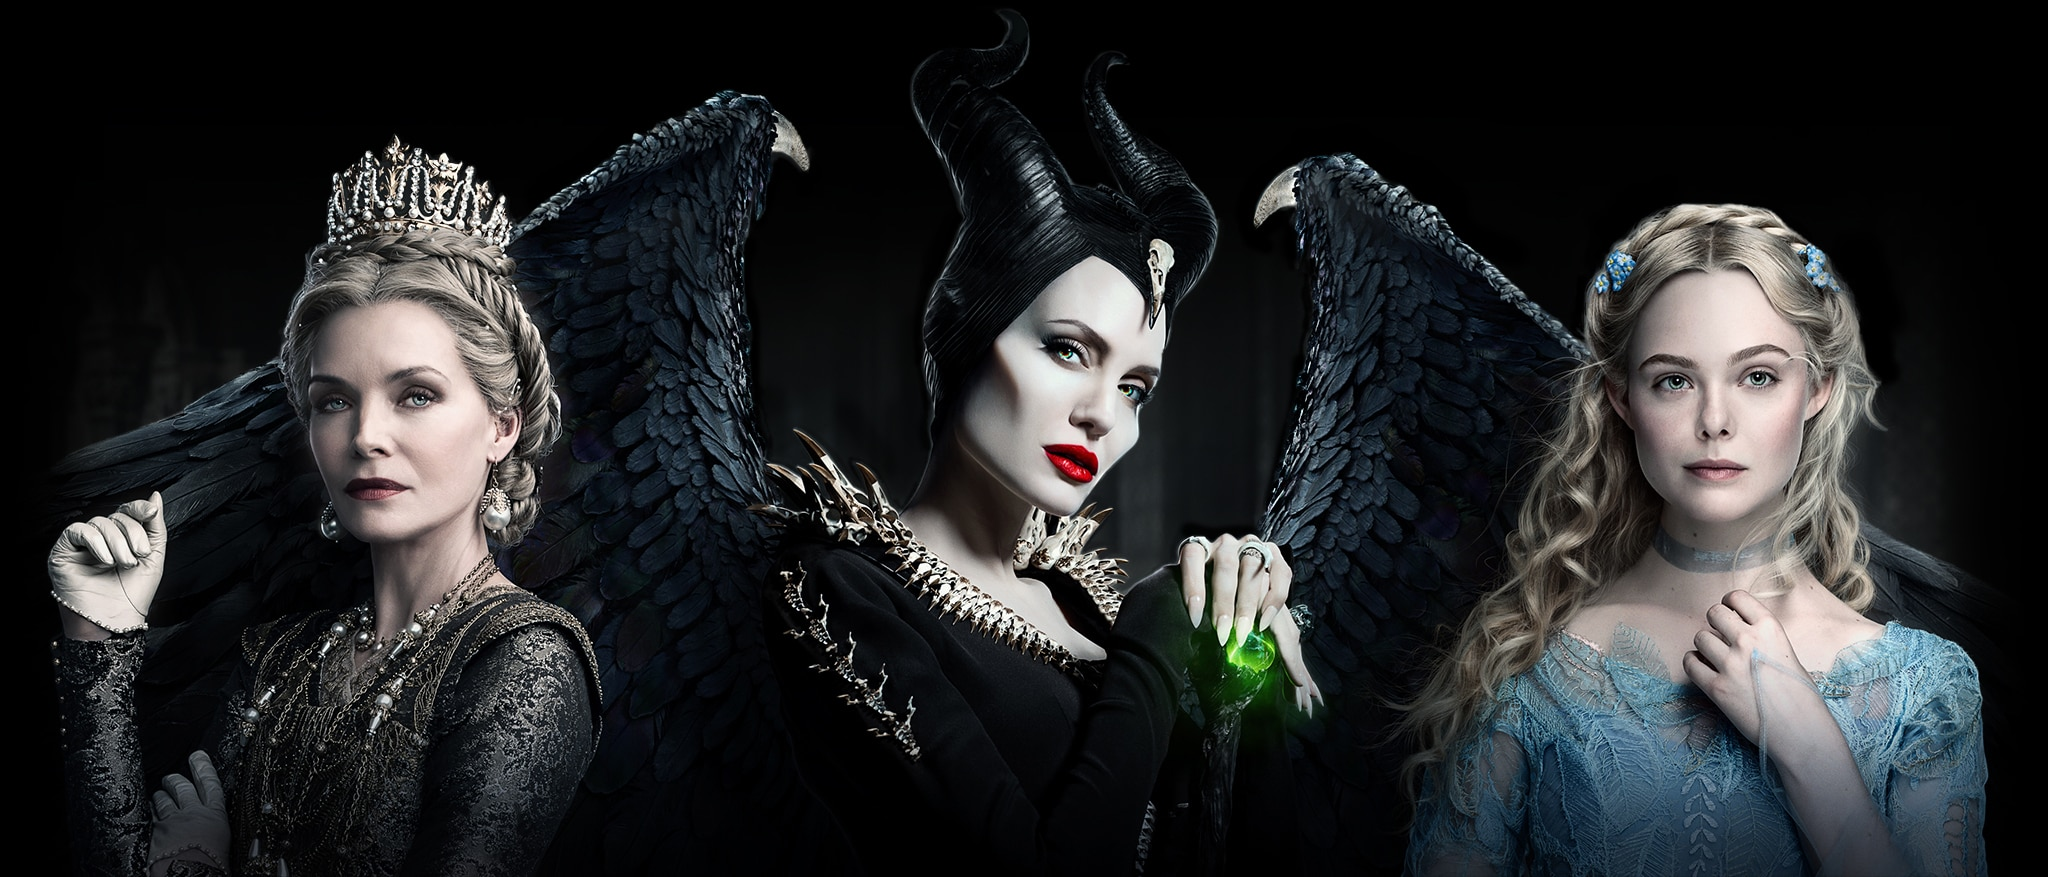 Michelle Pfeiffer, Angelina Jolie and Elle Fanning in Maleficent: Mistress of Evil